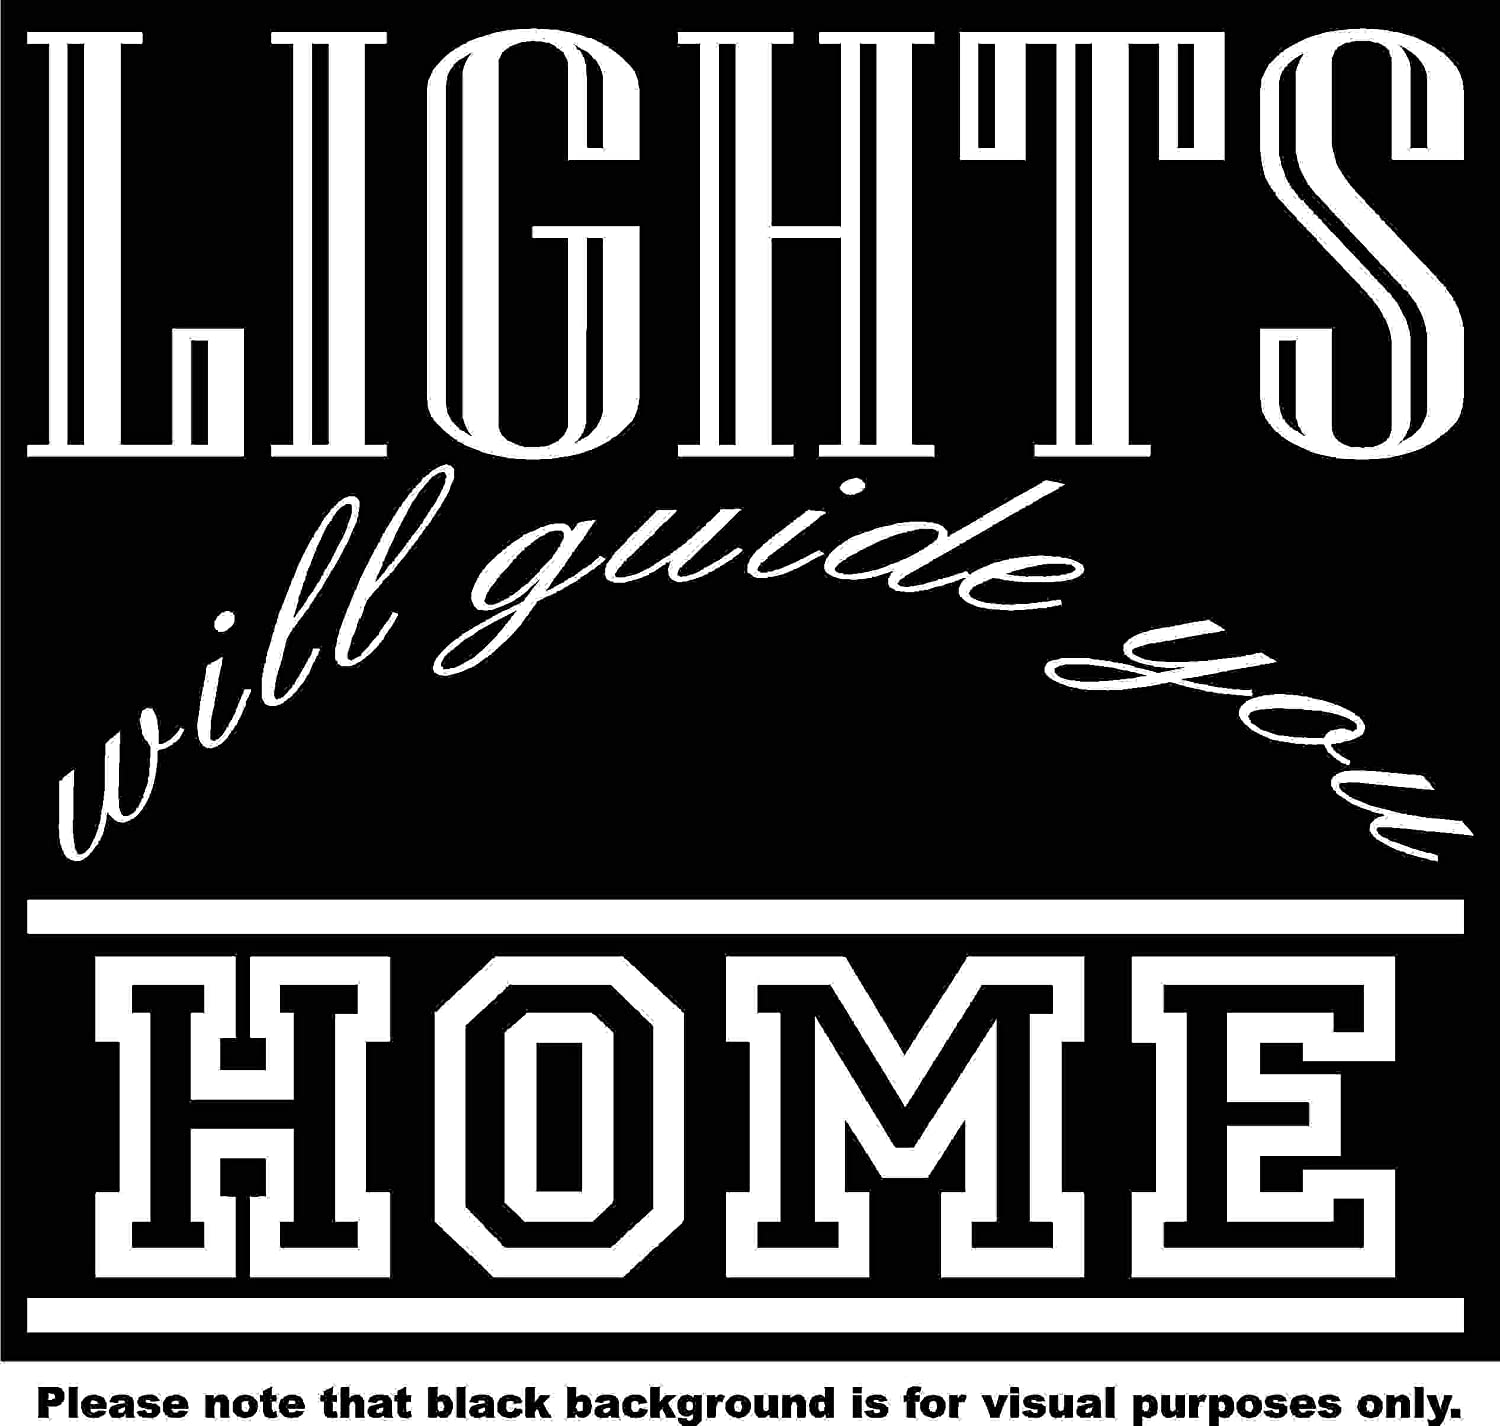 Lights will Guide you Home Quote Car Window Tumblers Wall Decal Sticker Vinyl Laptops Cellphones Phones Tablets Ipads Helmets Motorcycles Computer Towers V and T Gifts